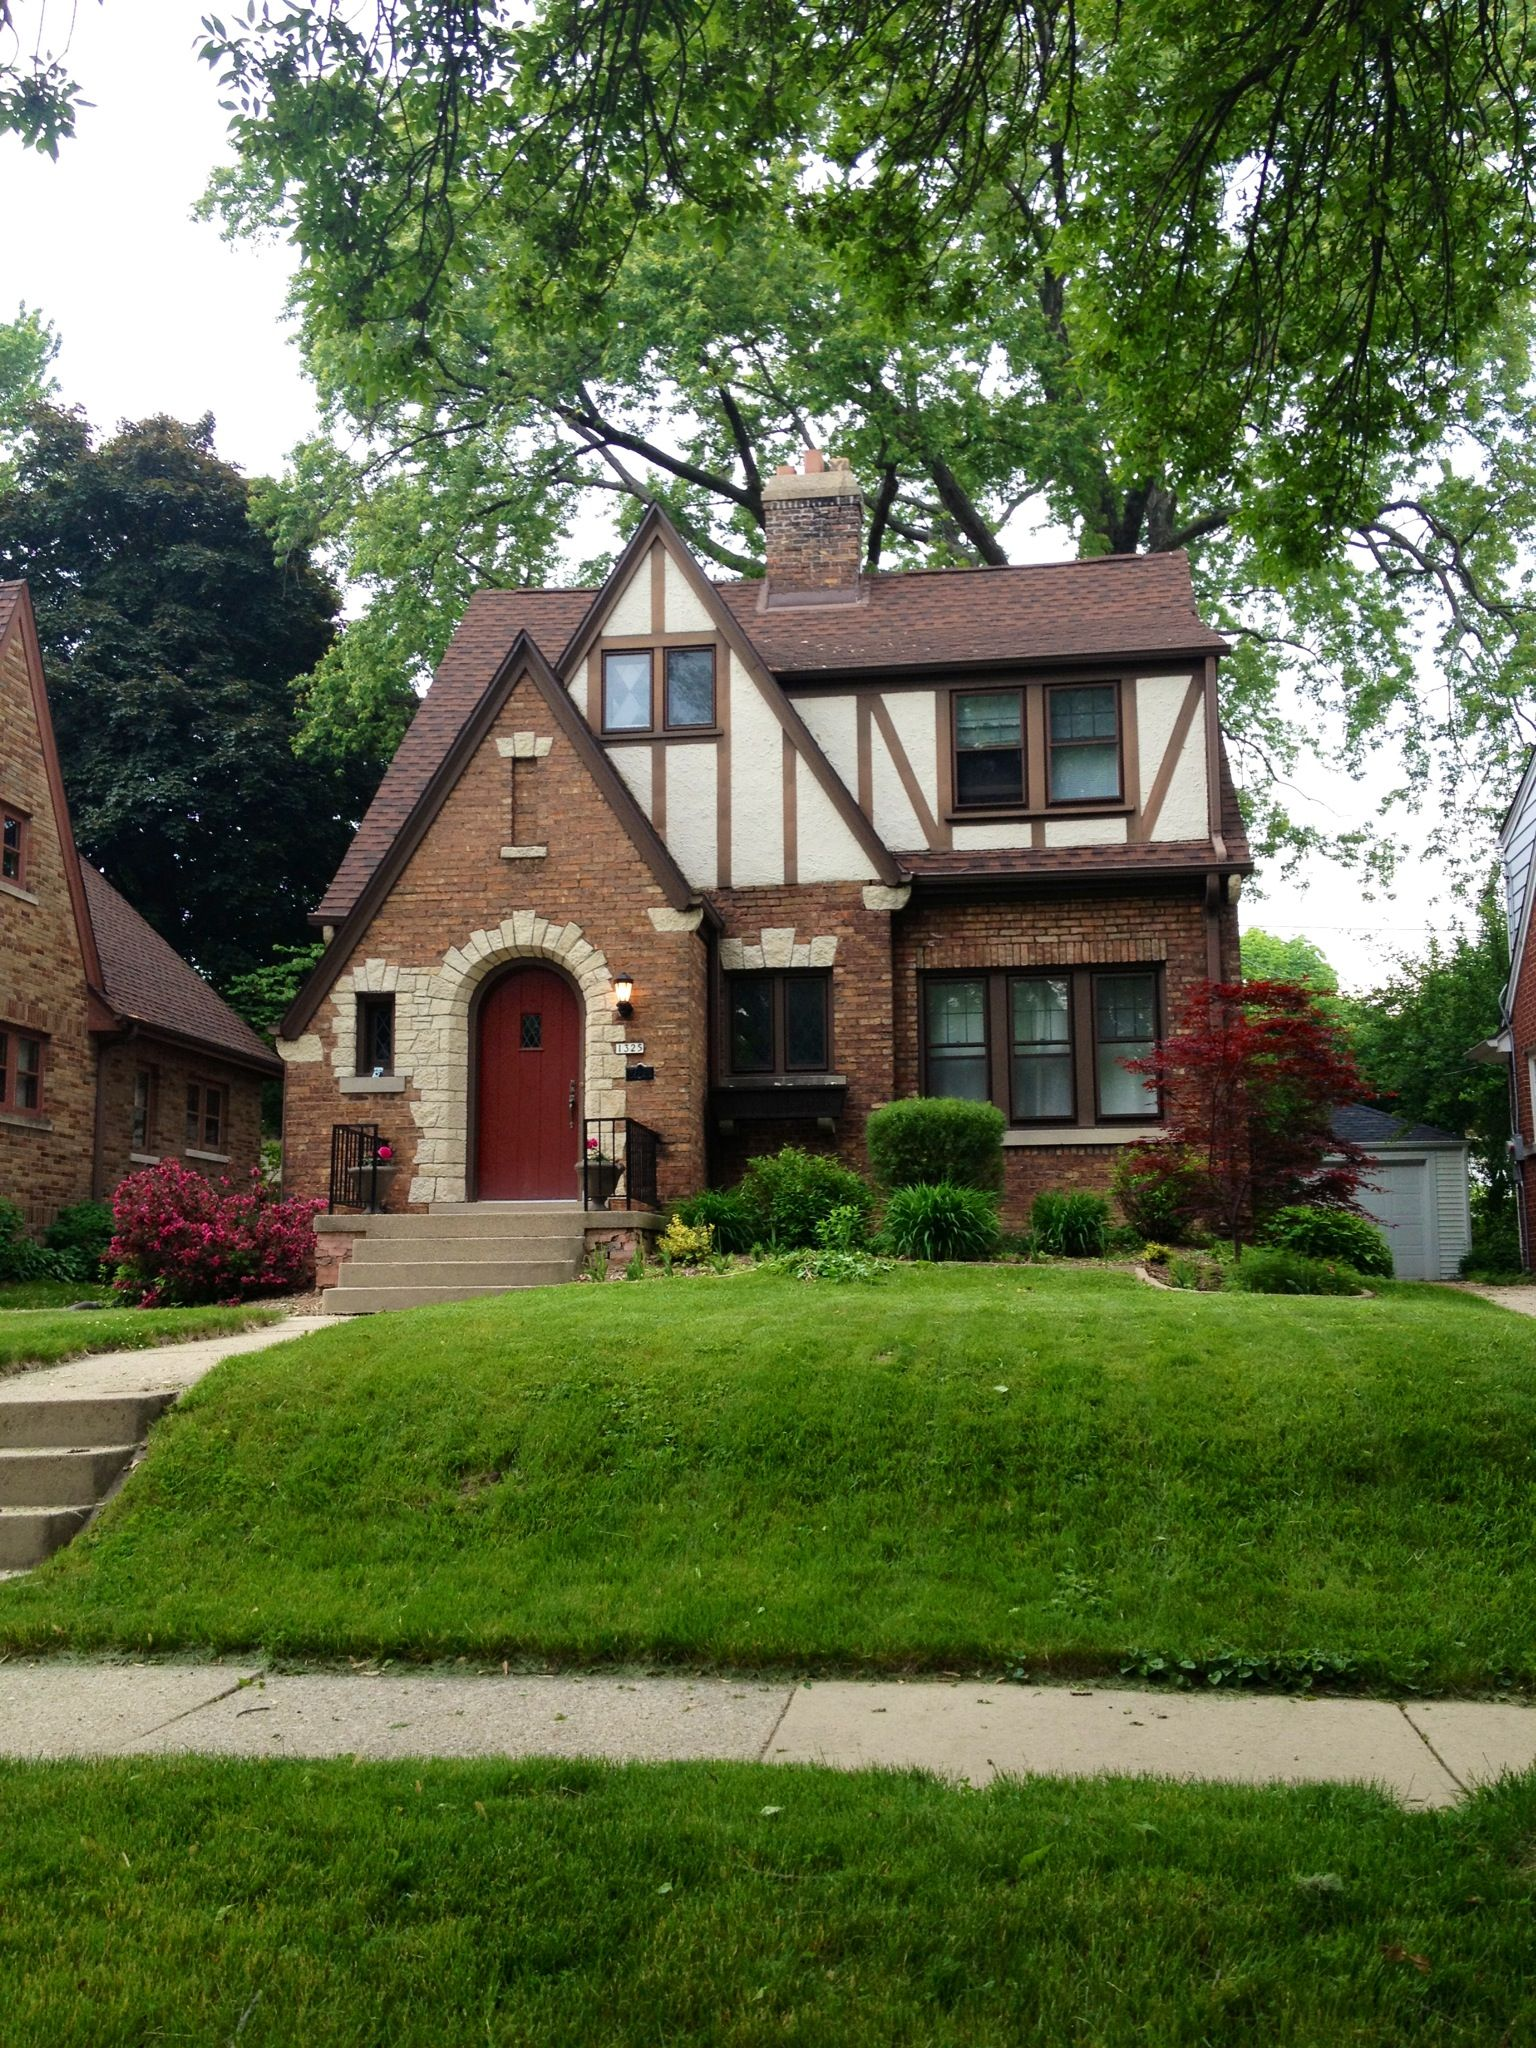 Adorable tudor style home reminds me of sugarhouse ut for Small tudor homes